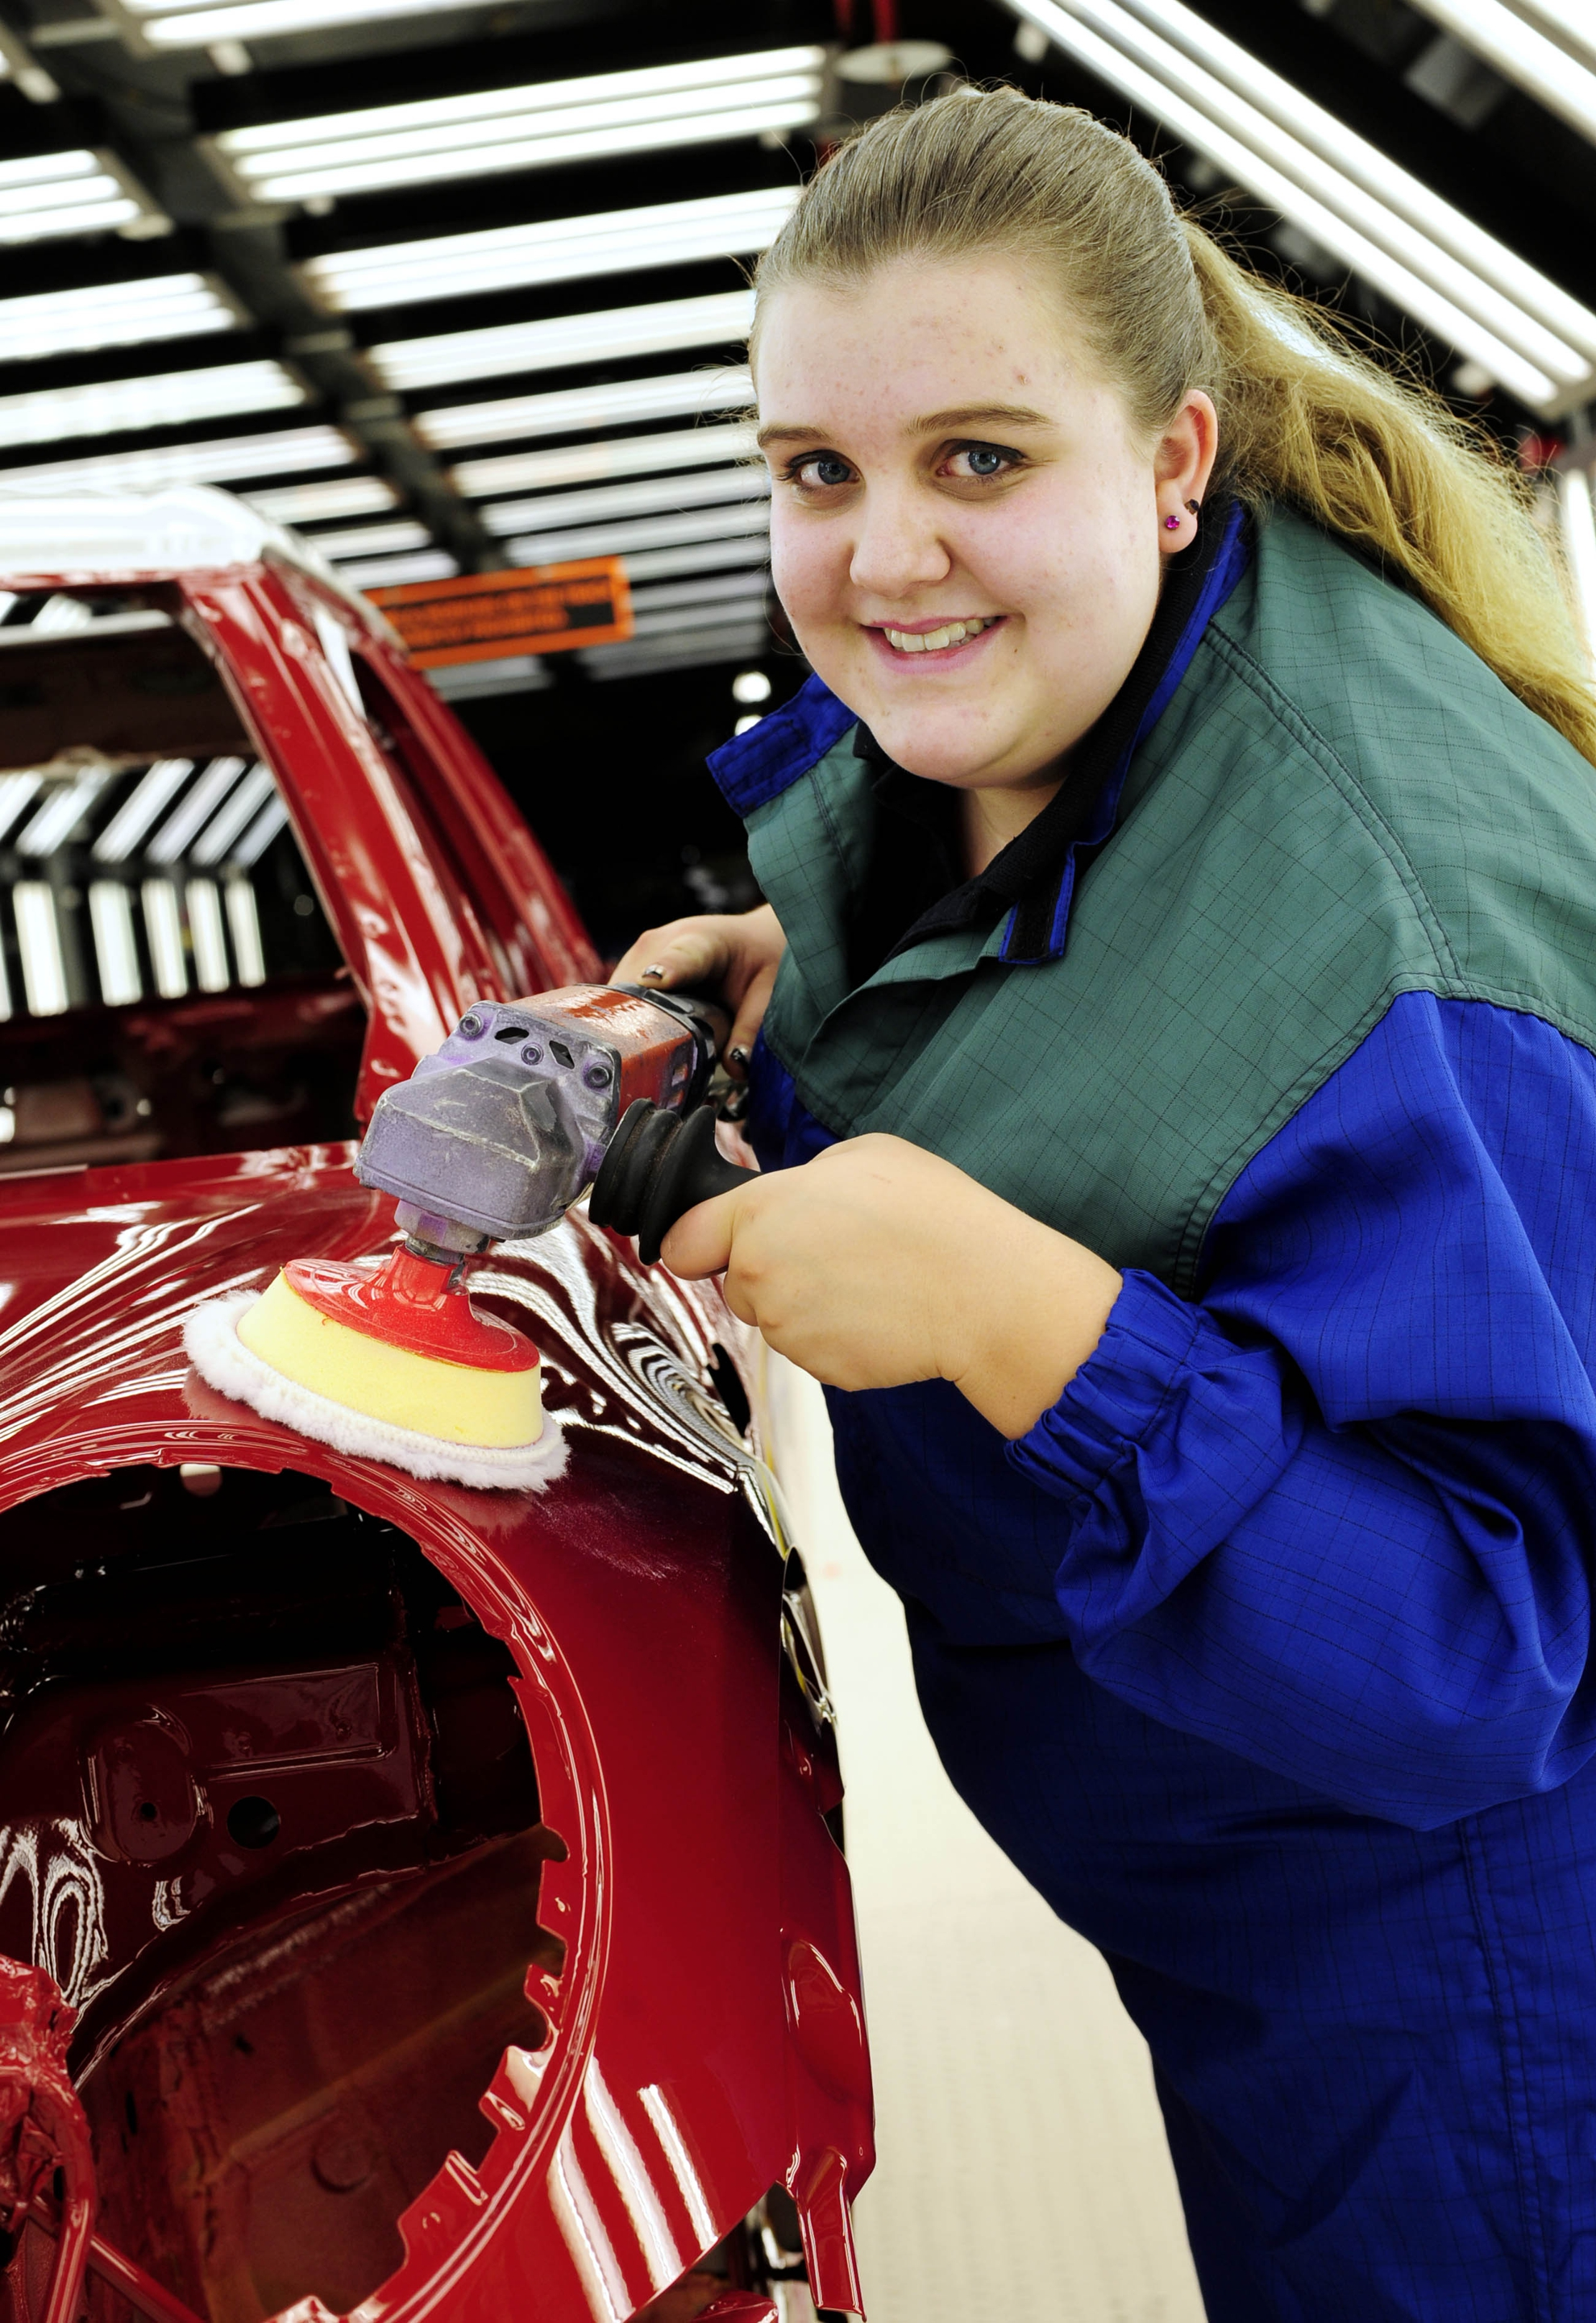 BMW-Apprentice-Program